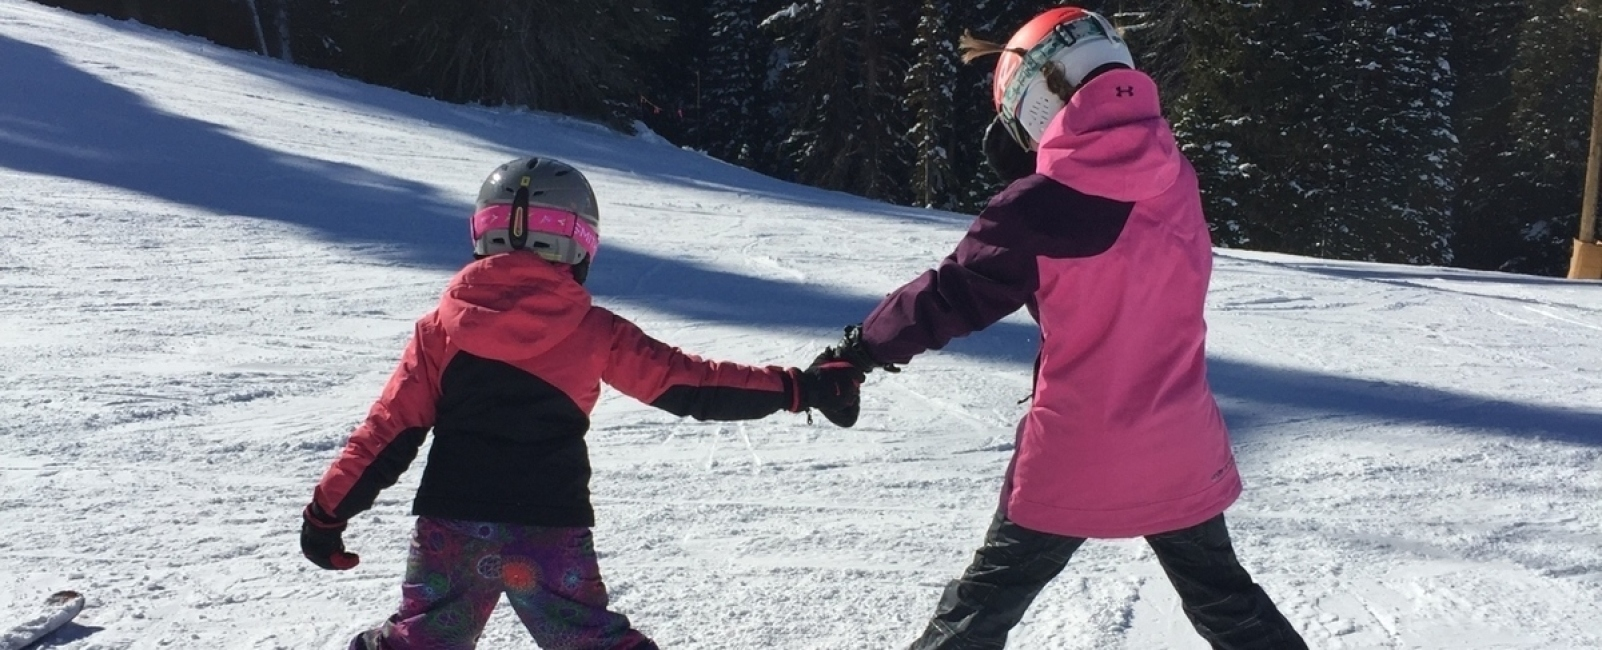 10 Reasons Why Ski Lessons Trump Parents' Instruction